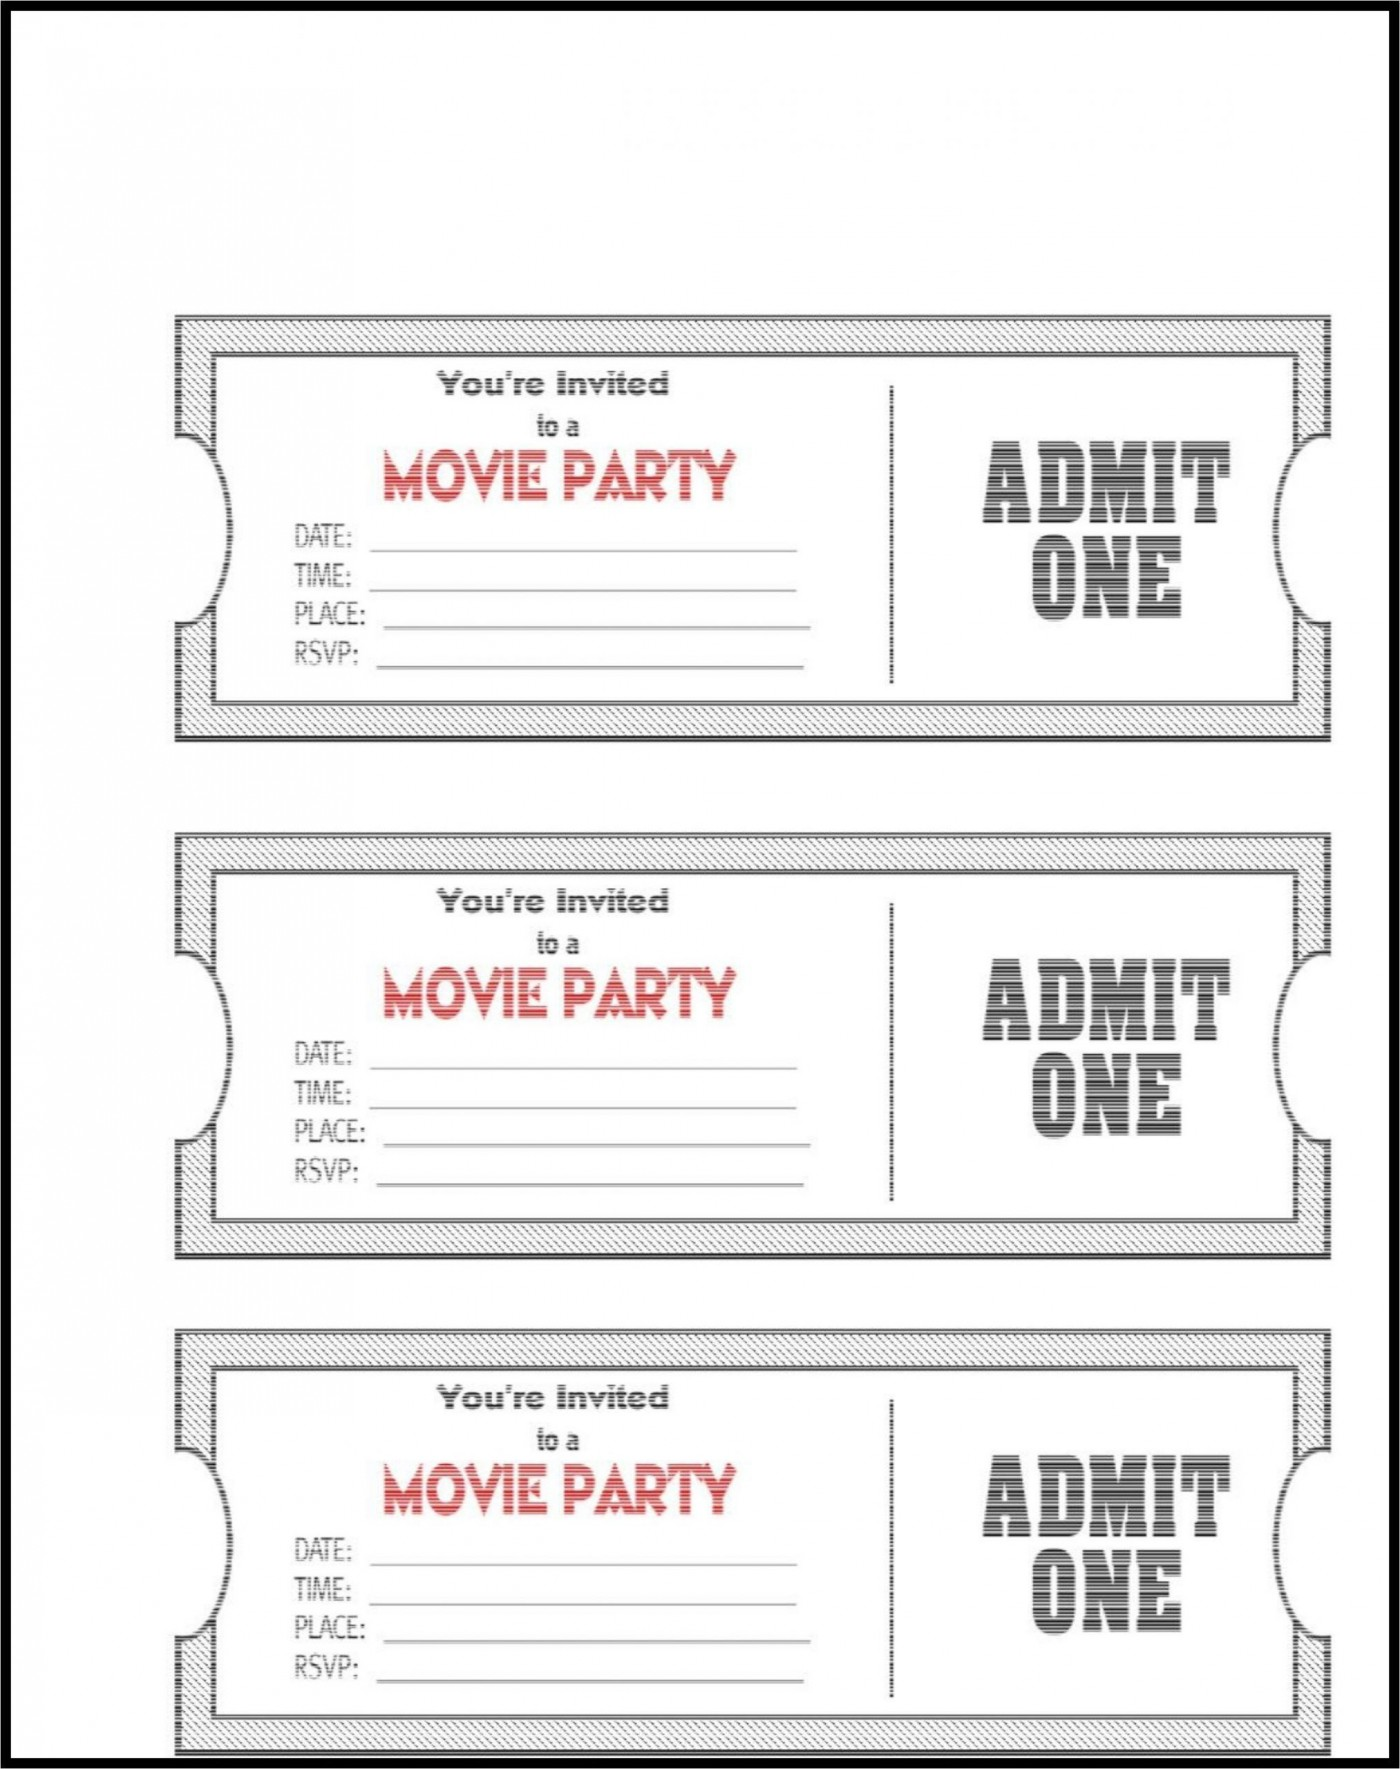 006 Impressive Editable Ticket Template Free High Definition  Concert Word Irctc Format Download Movie1400